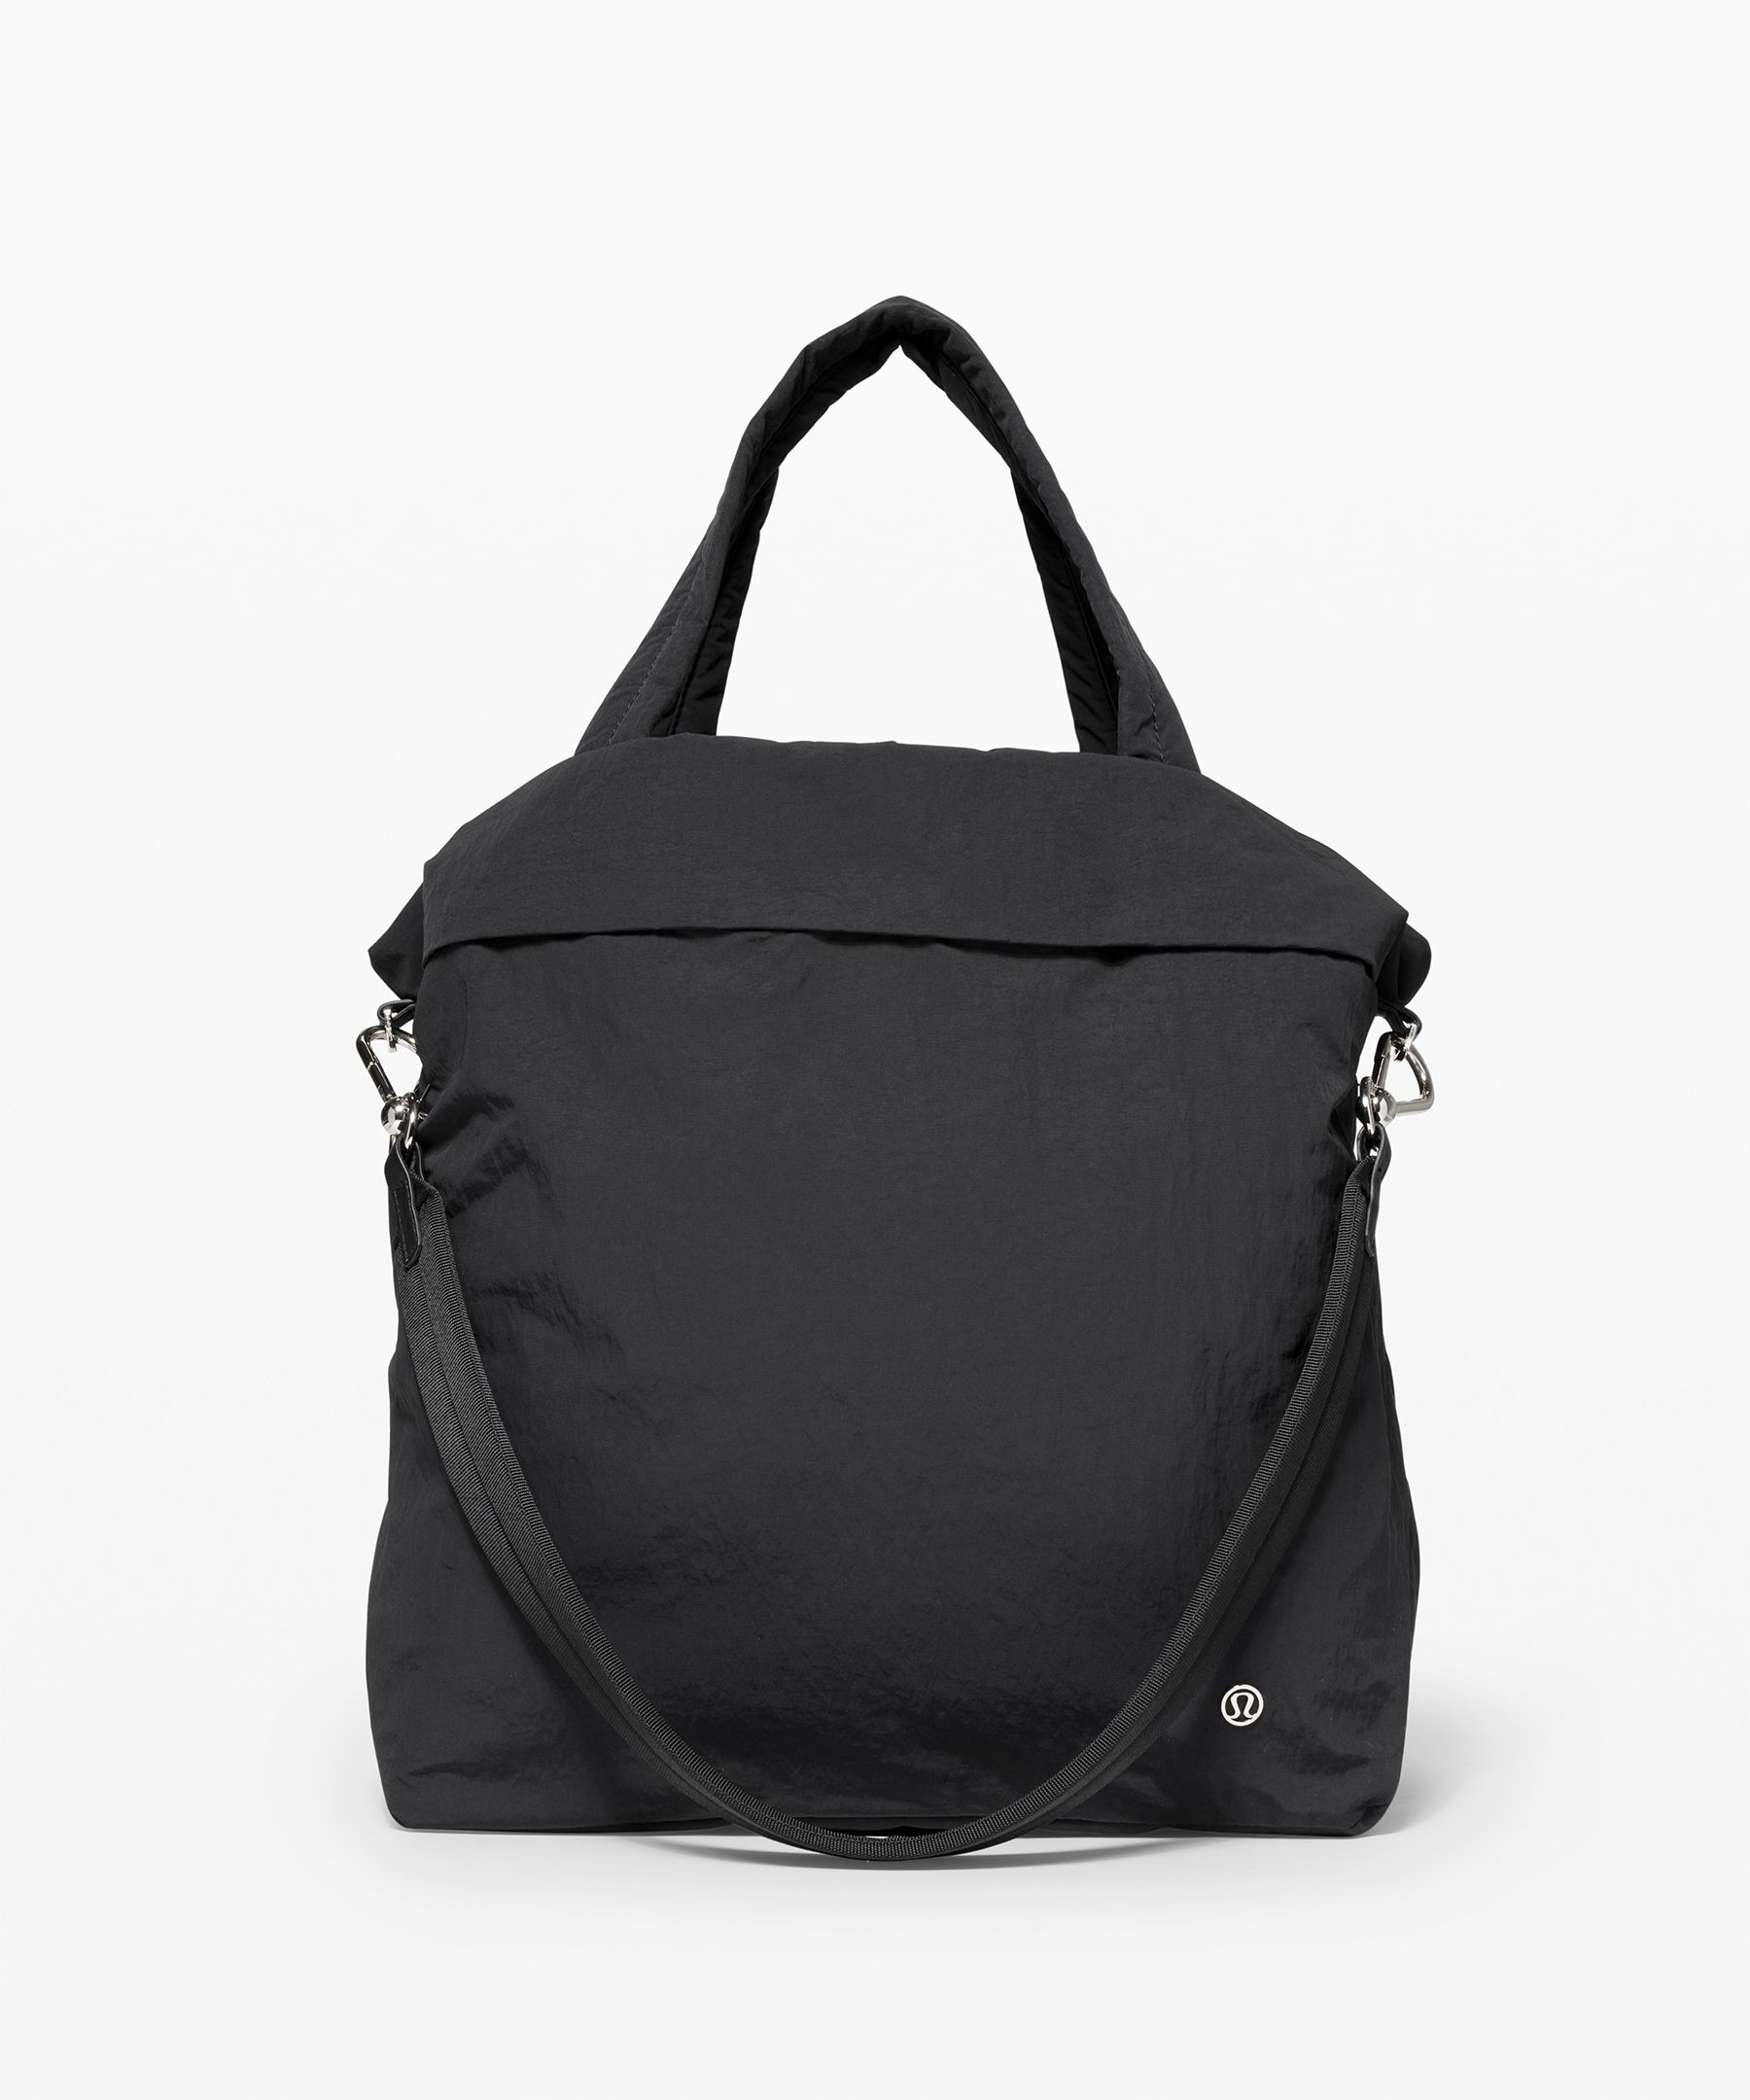 ca5c688090 On My Level Bag *Large 30L | Women's Bags | lululemon athletica